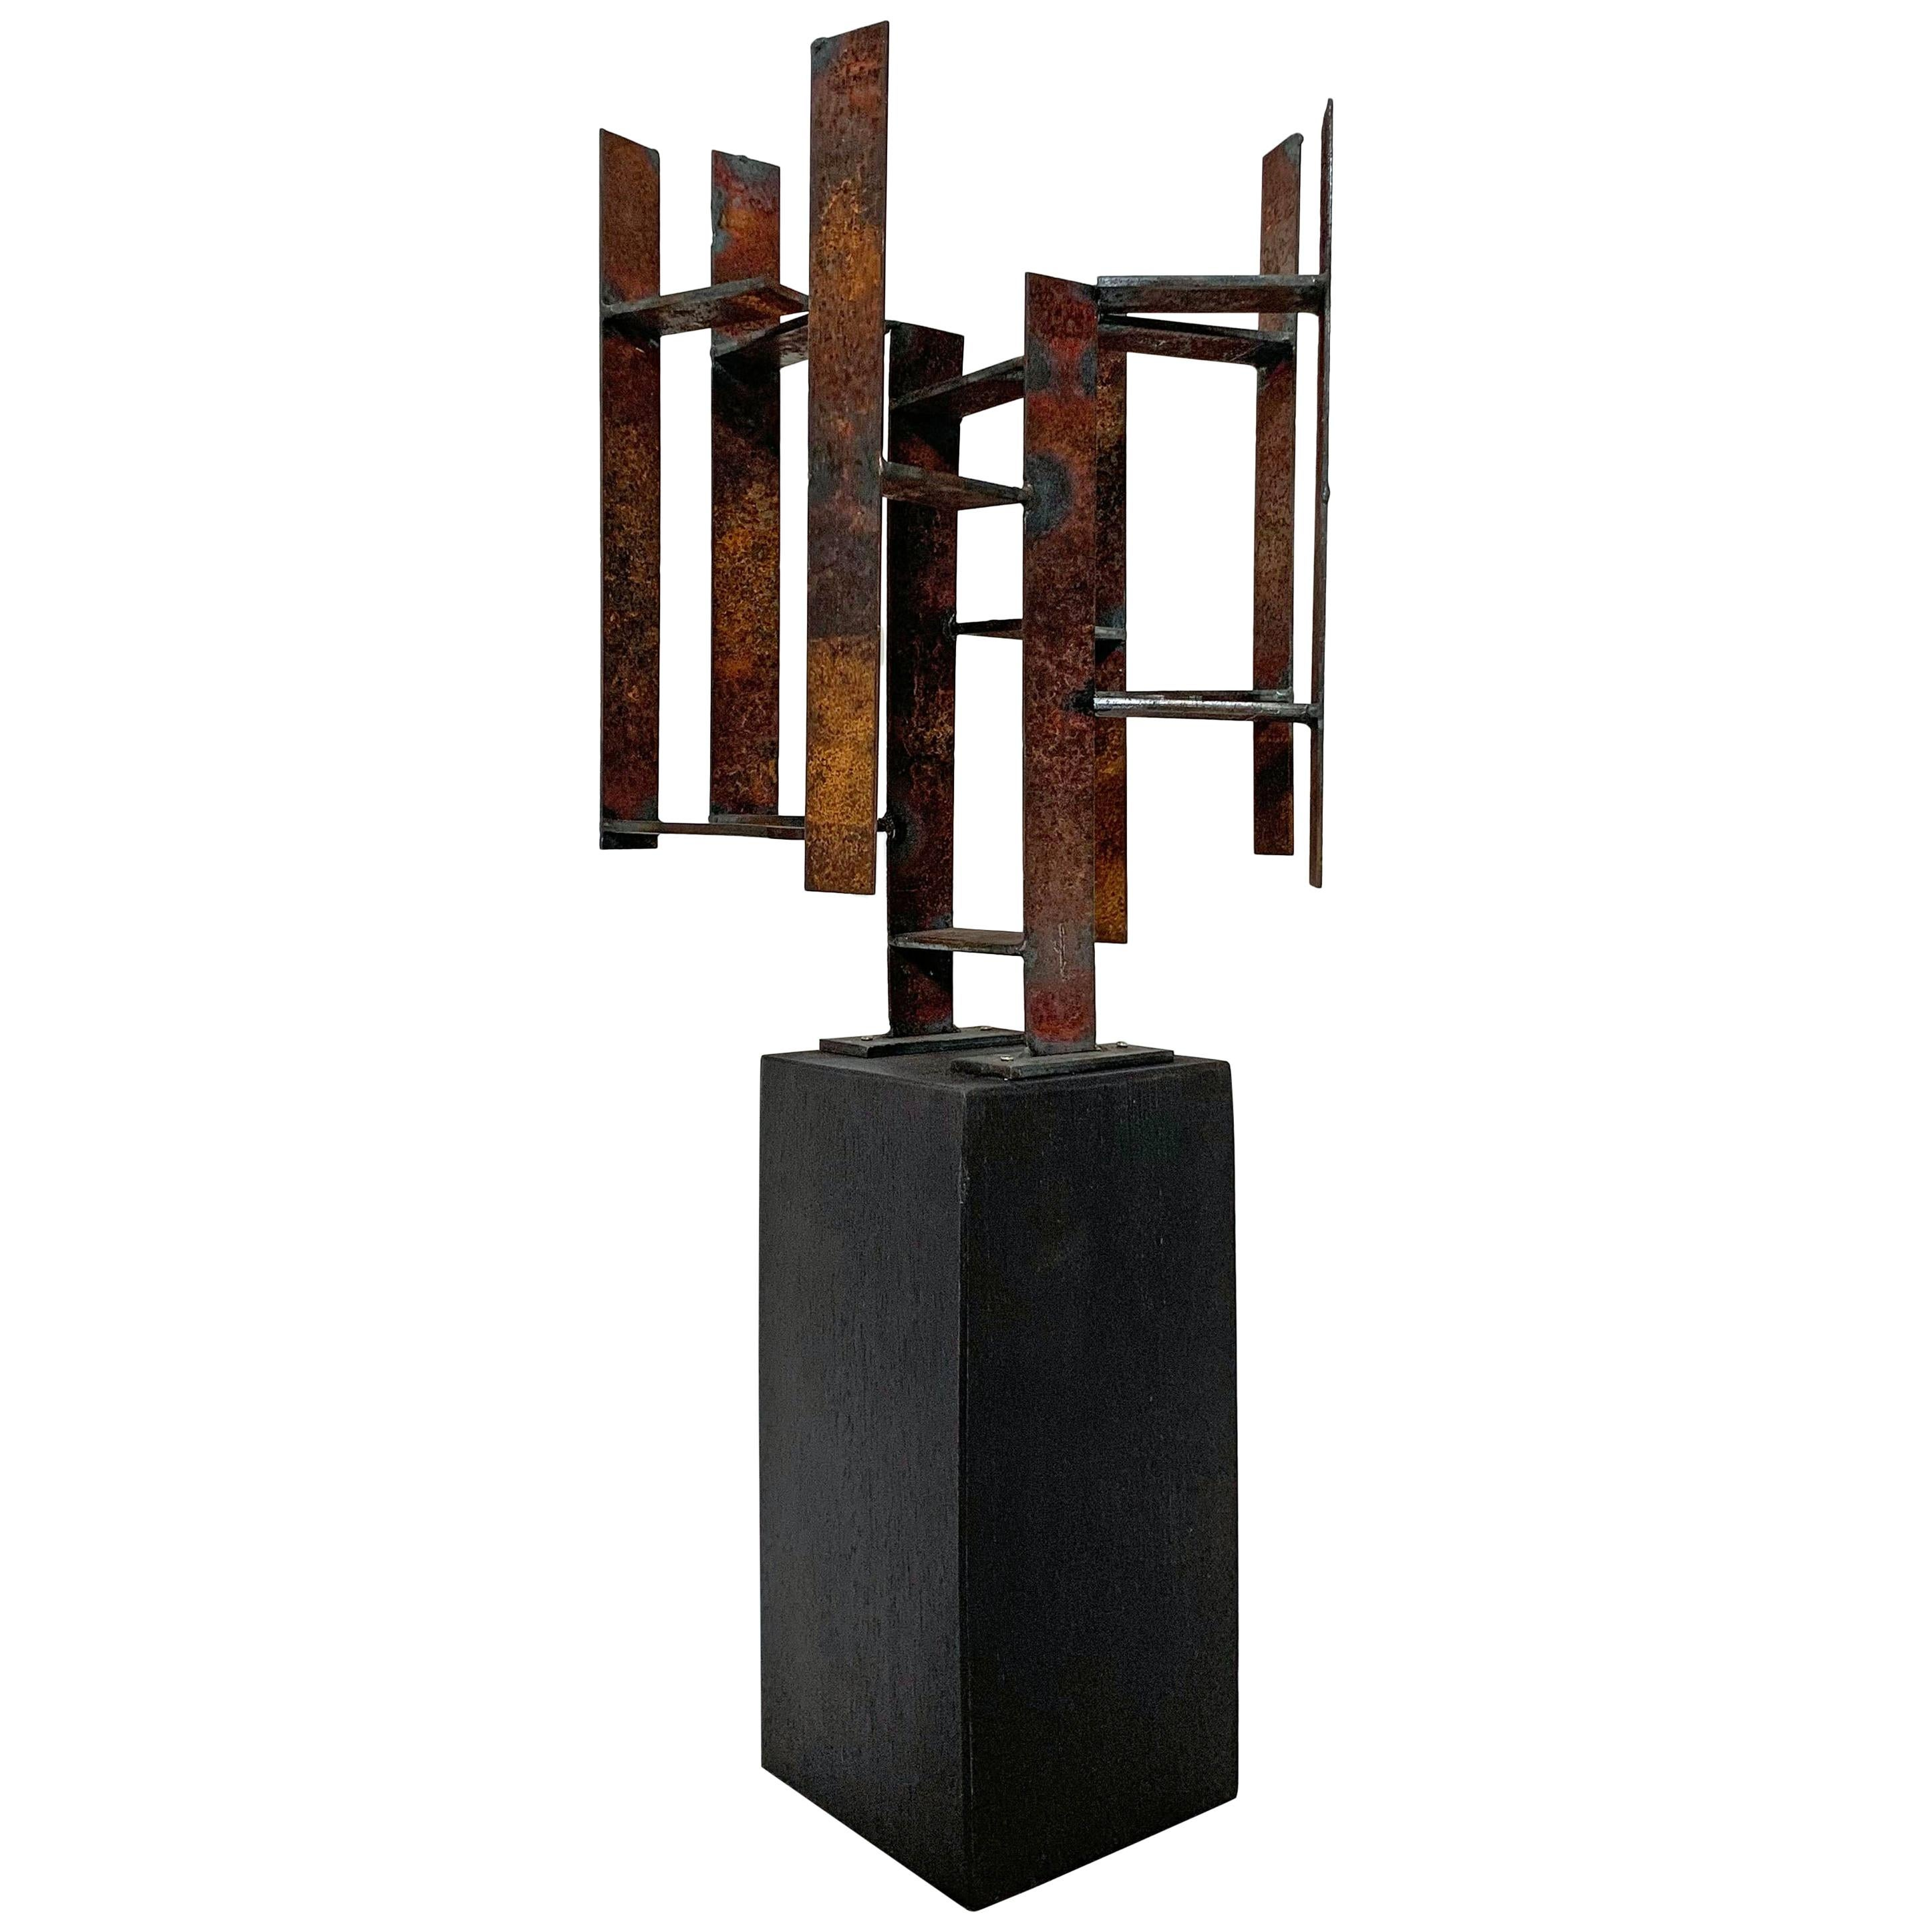 Mid-Century Modern Abstract Brutalist Welded Steel Sculpture by John Livermore